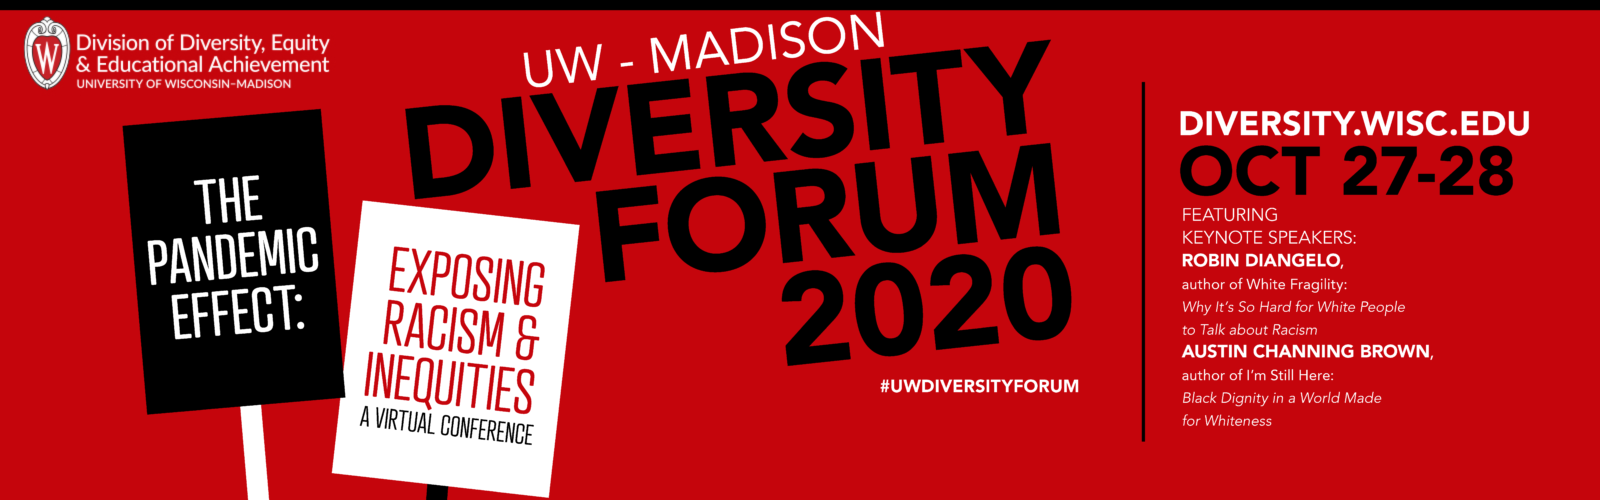 Graphic advertising the UW–Madison Diversity Forum. Details at link.